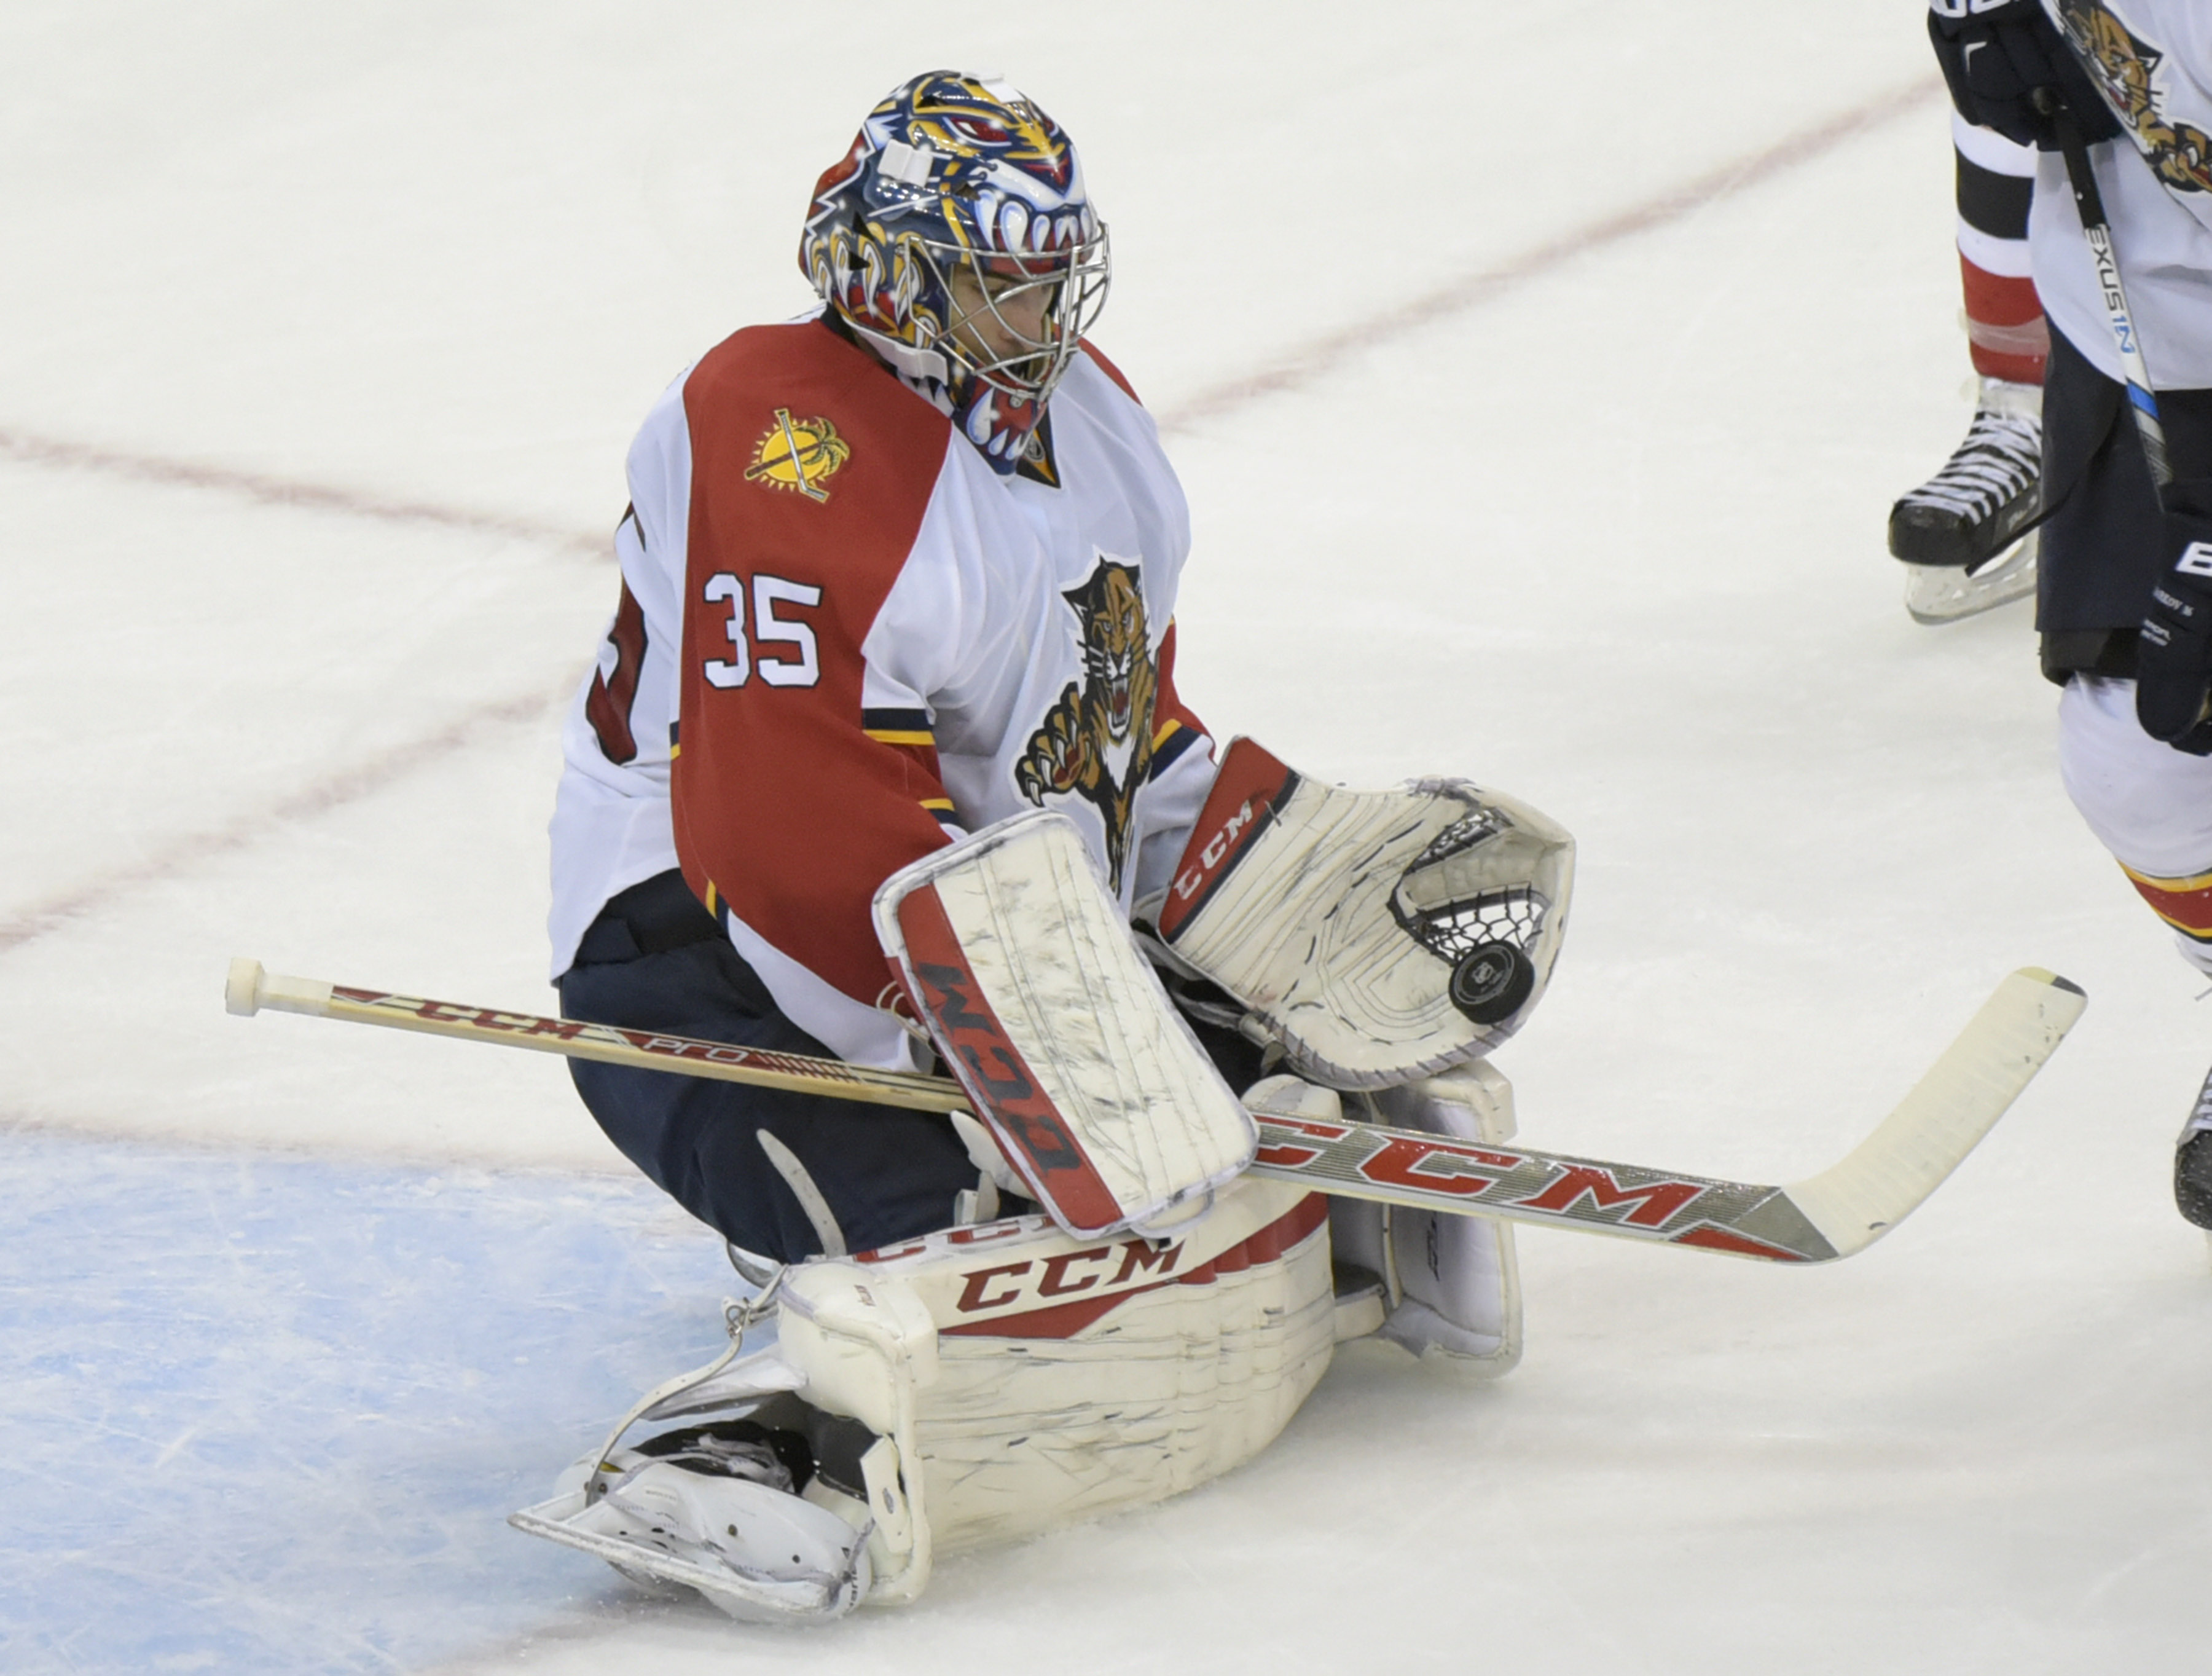 Florida Panthers goaltender Al Montoya attempts to glove the puck during the second period of an NHL hockey game against the New Jersey Devils on Thursday, Dec. 17, 2015, in Newark, N.J. (AP Photo/Bill Kostroun)